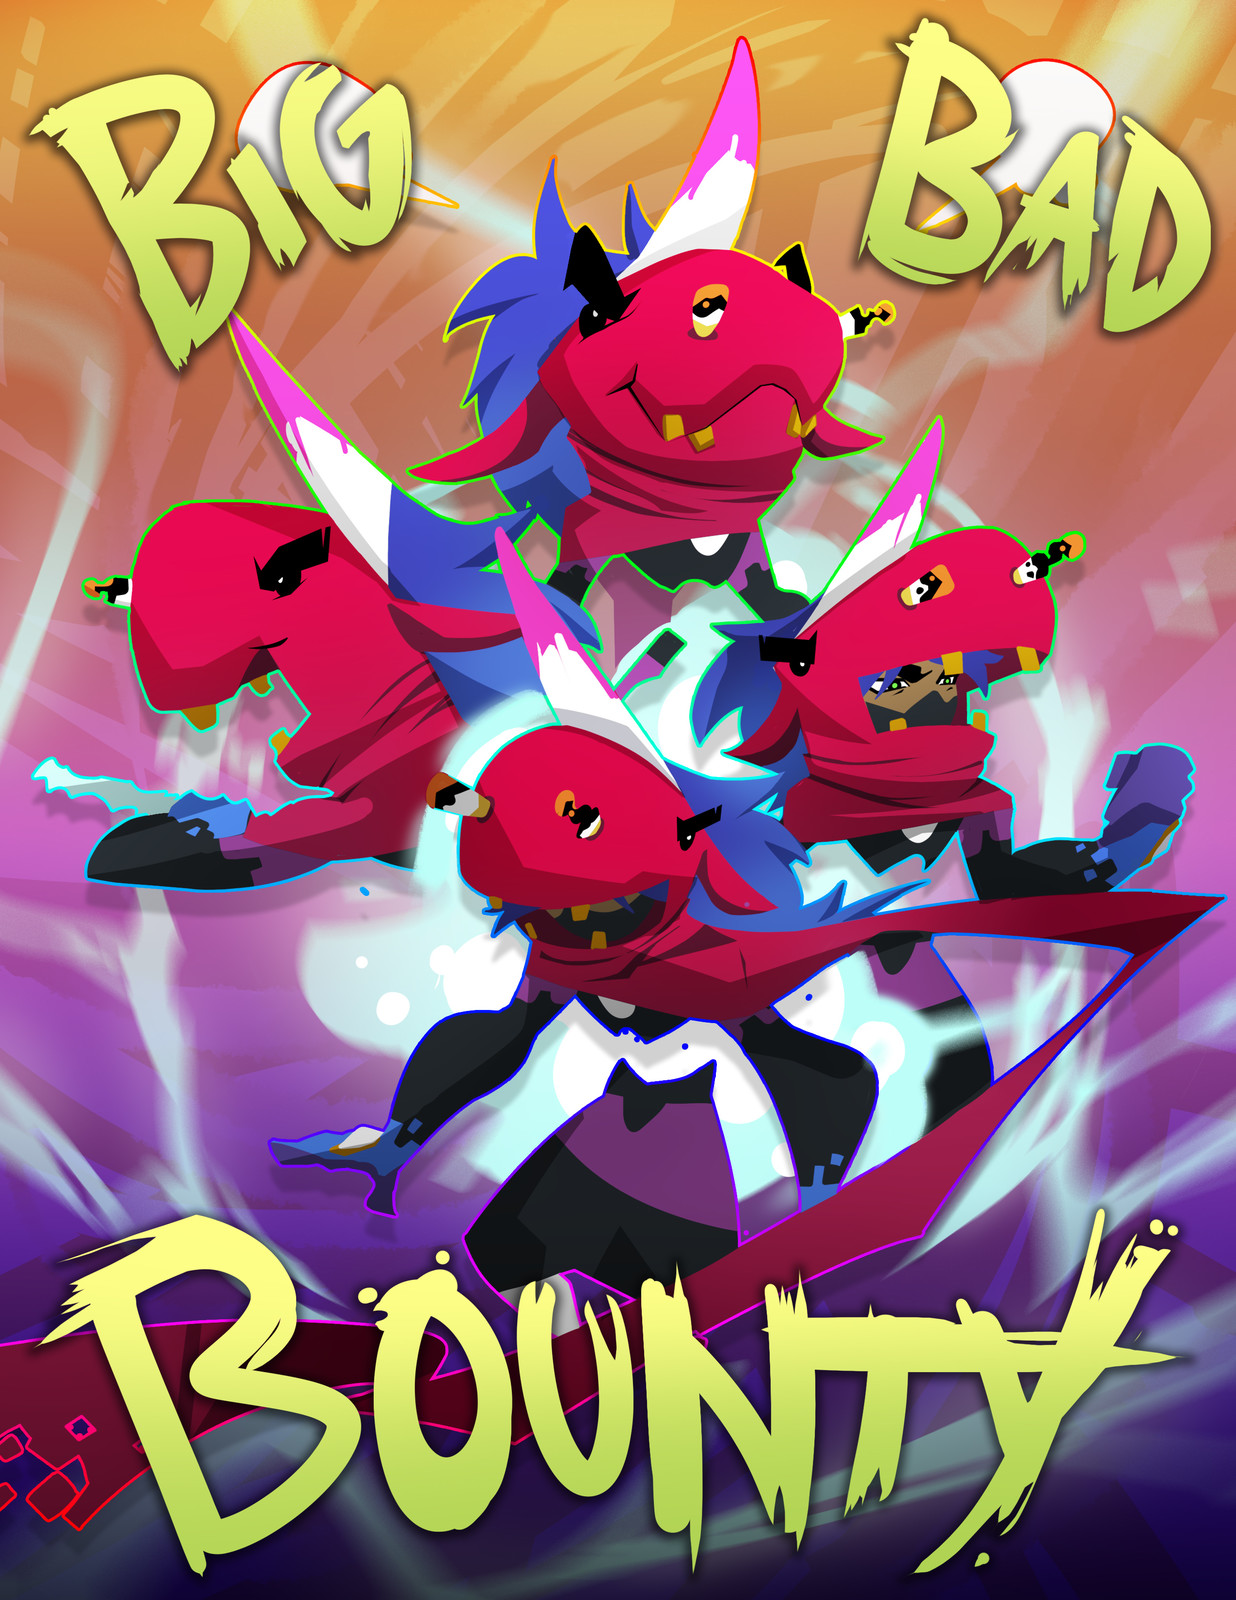 Big Bad Bounty Promo Piece